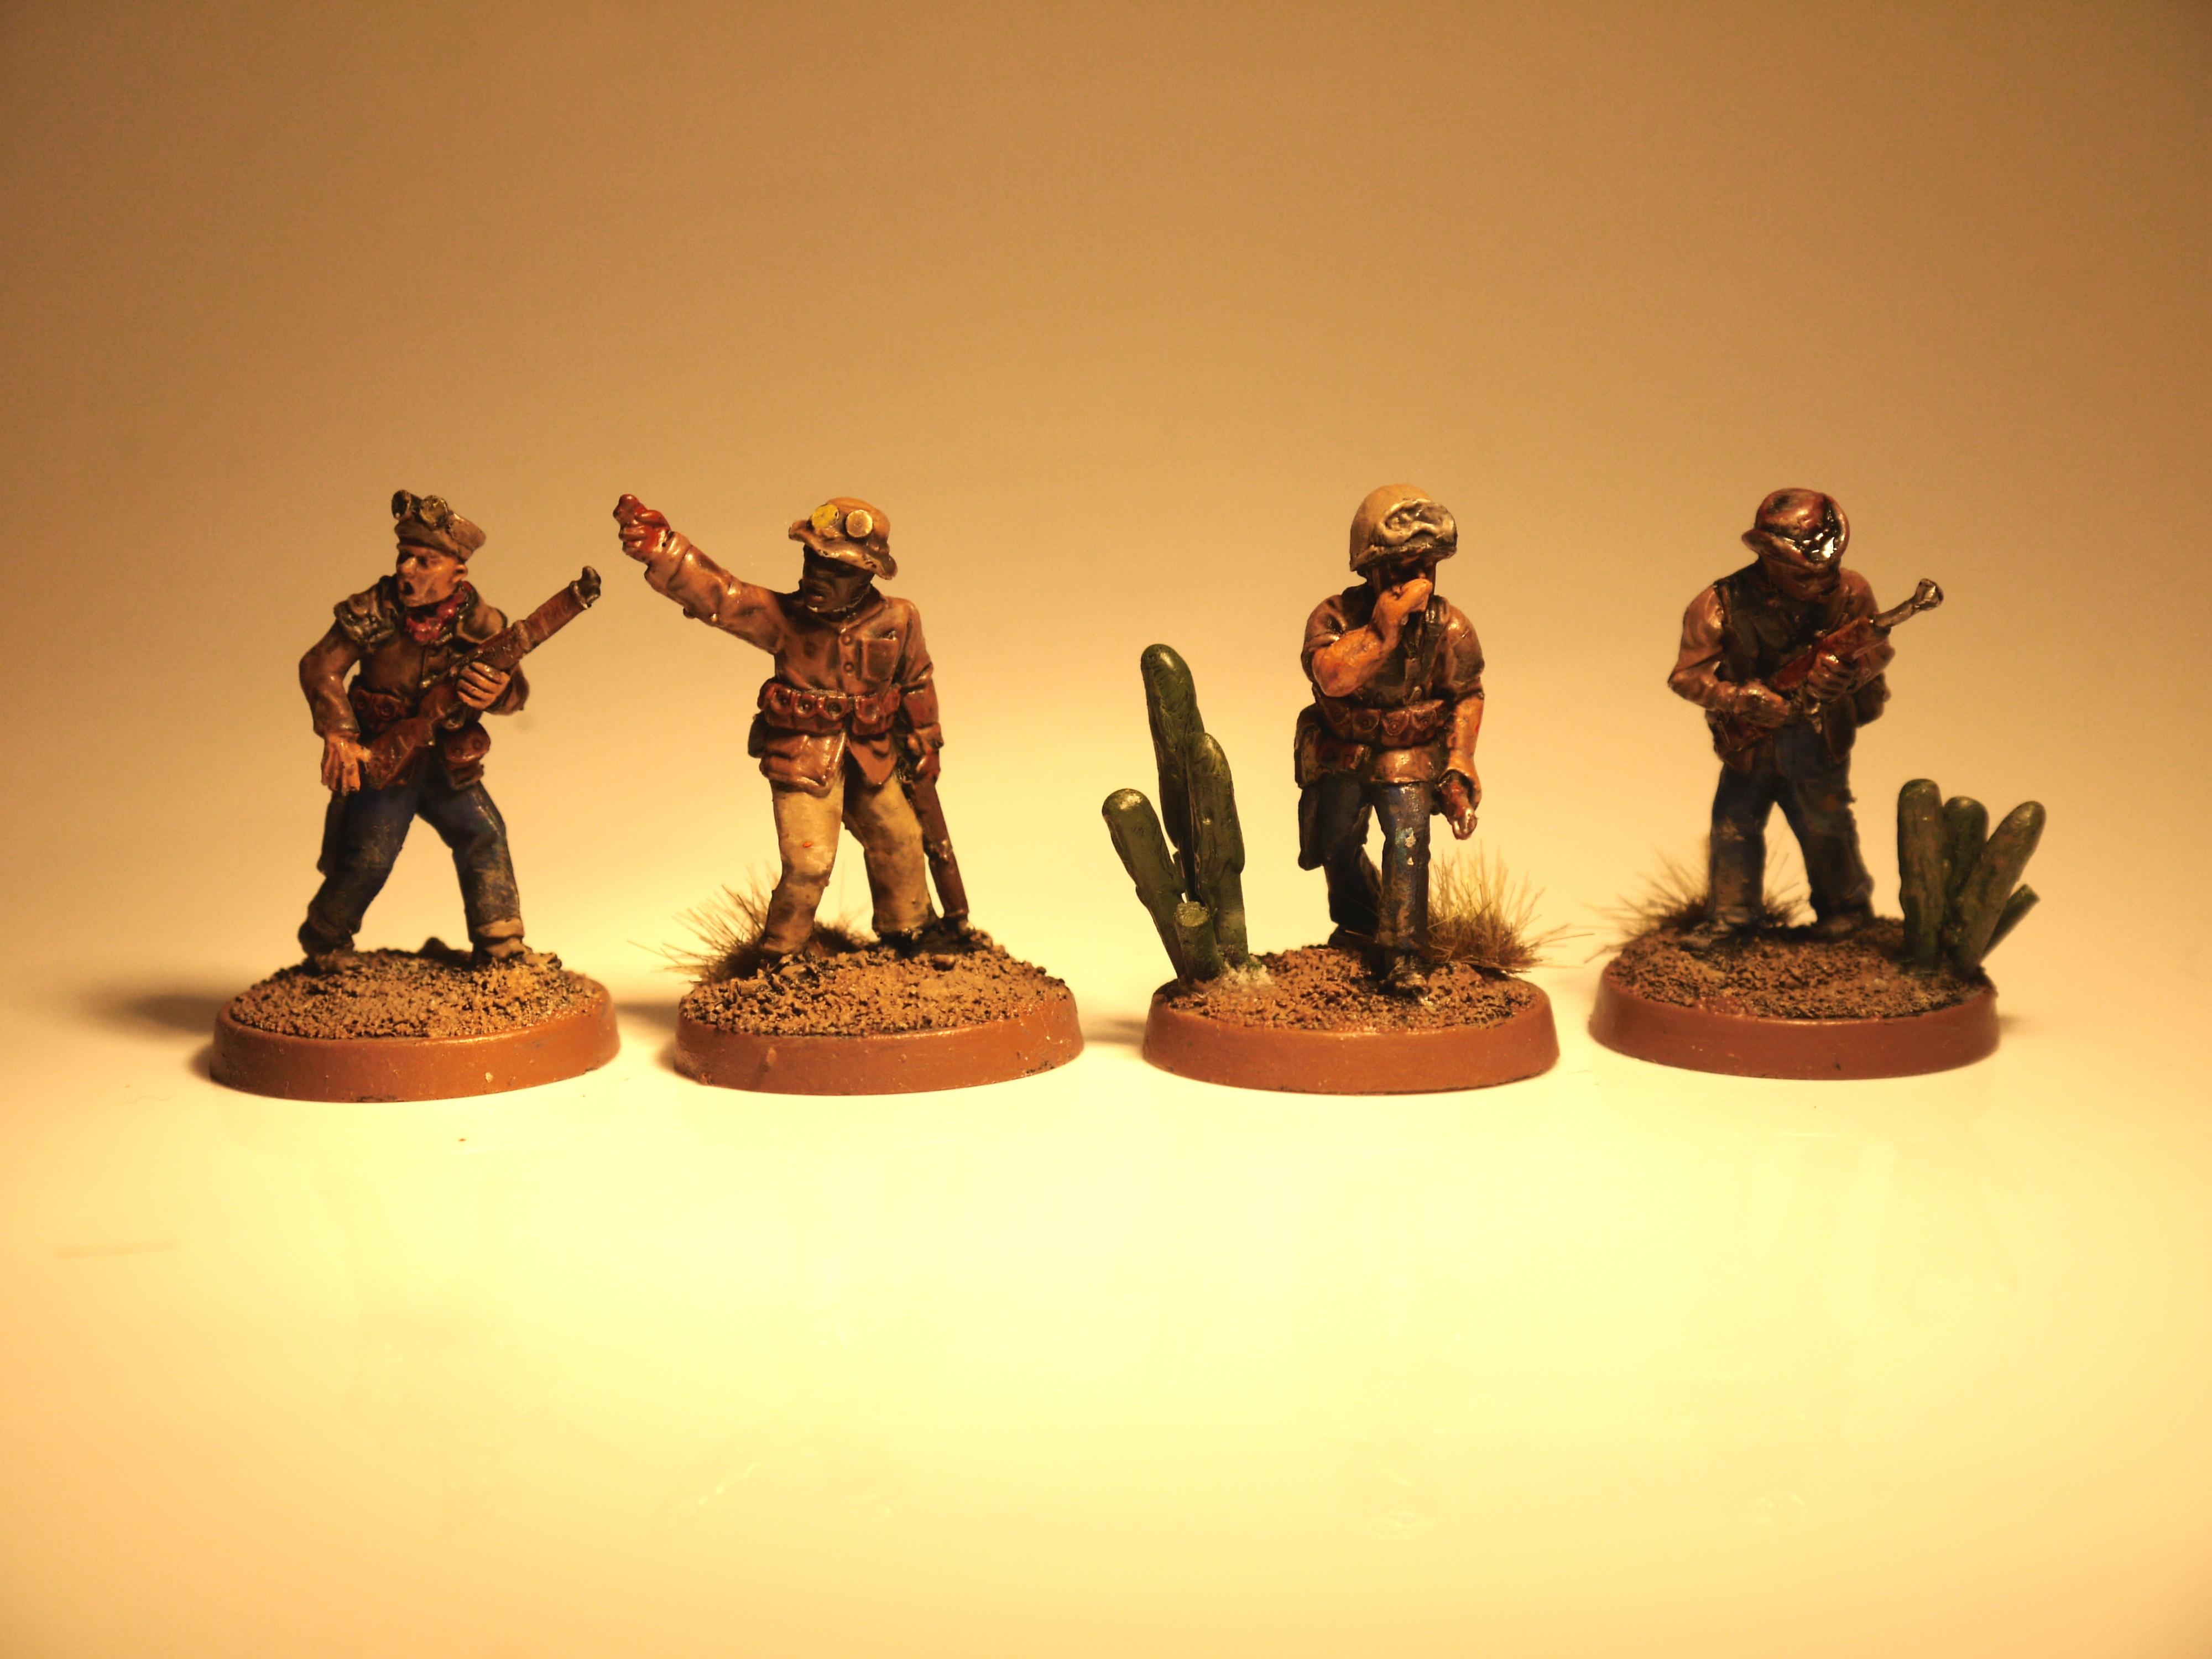 America, Anzac, Conscript, Fallout, Fallout. Post Apocalyptic, Lee Enflied, M1 Garand, Ncr, Post Apocalyptic, Post-apocalyptic, Recruit, Rifle, Soldier